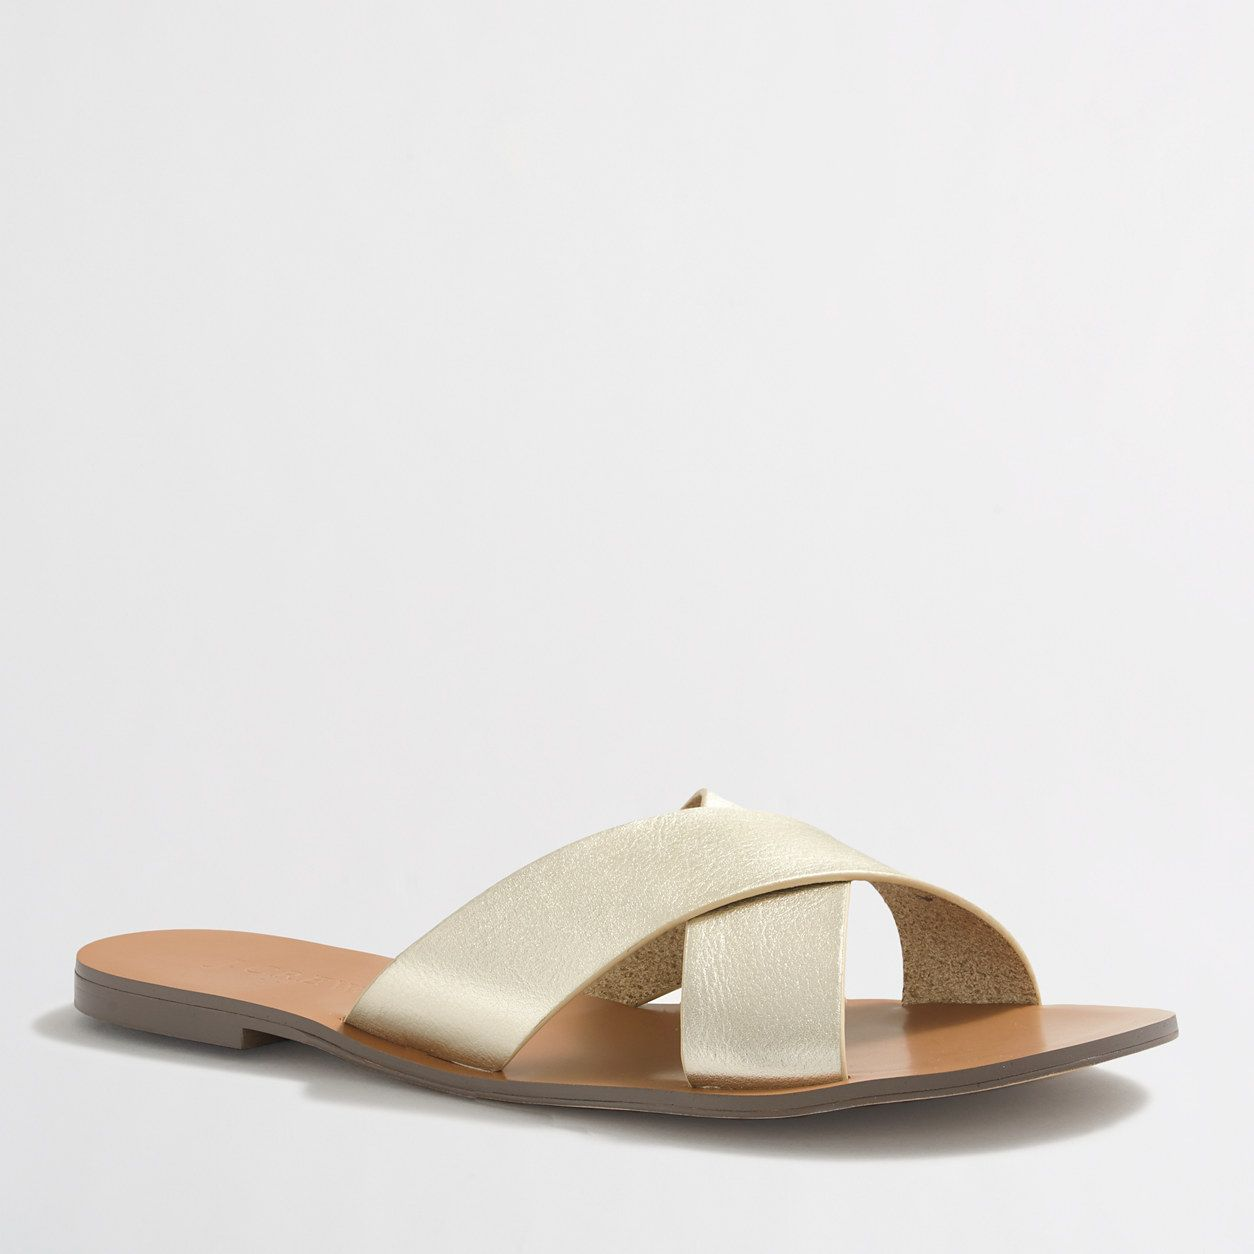 Factory seaside sandals : Outfit Obsessions | J.Crew Factory